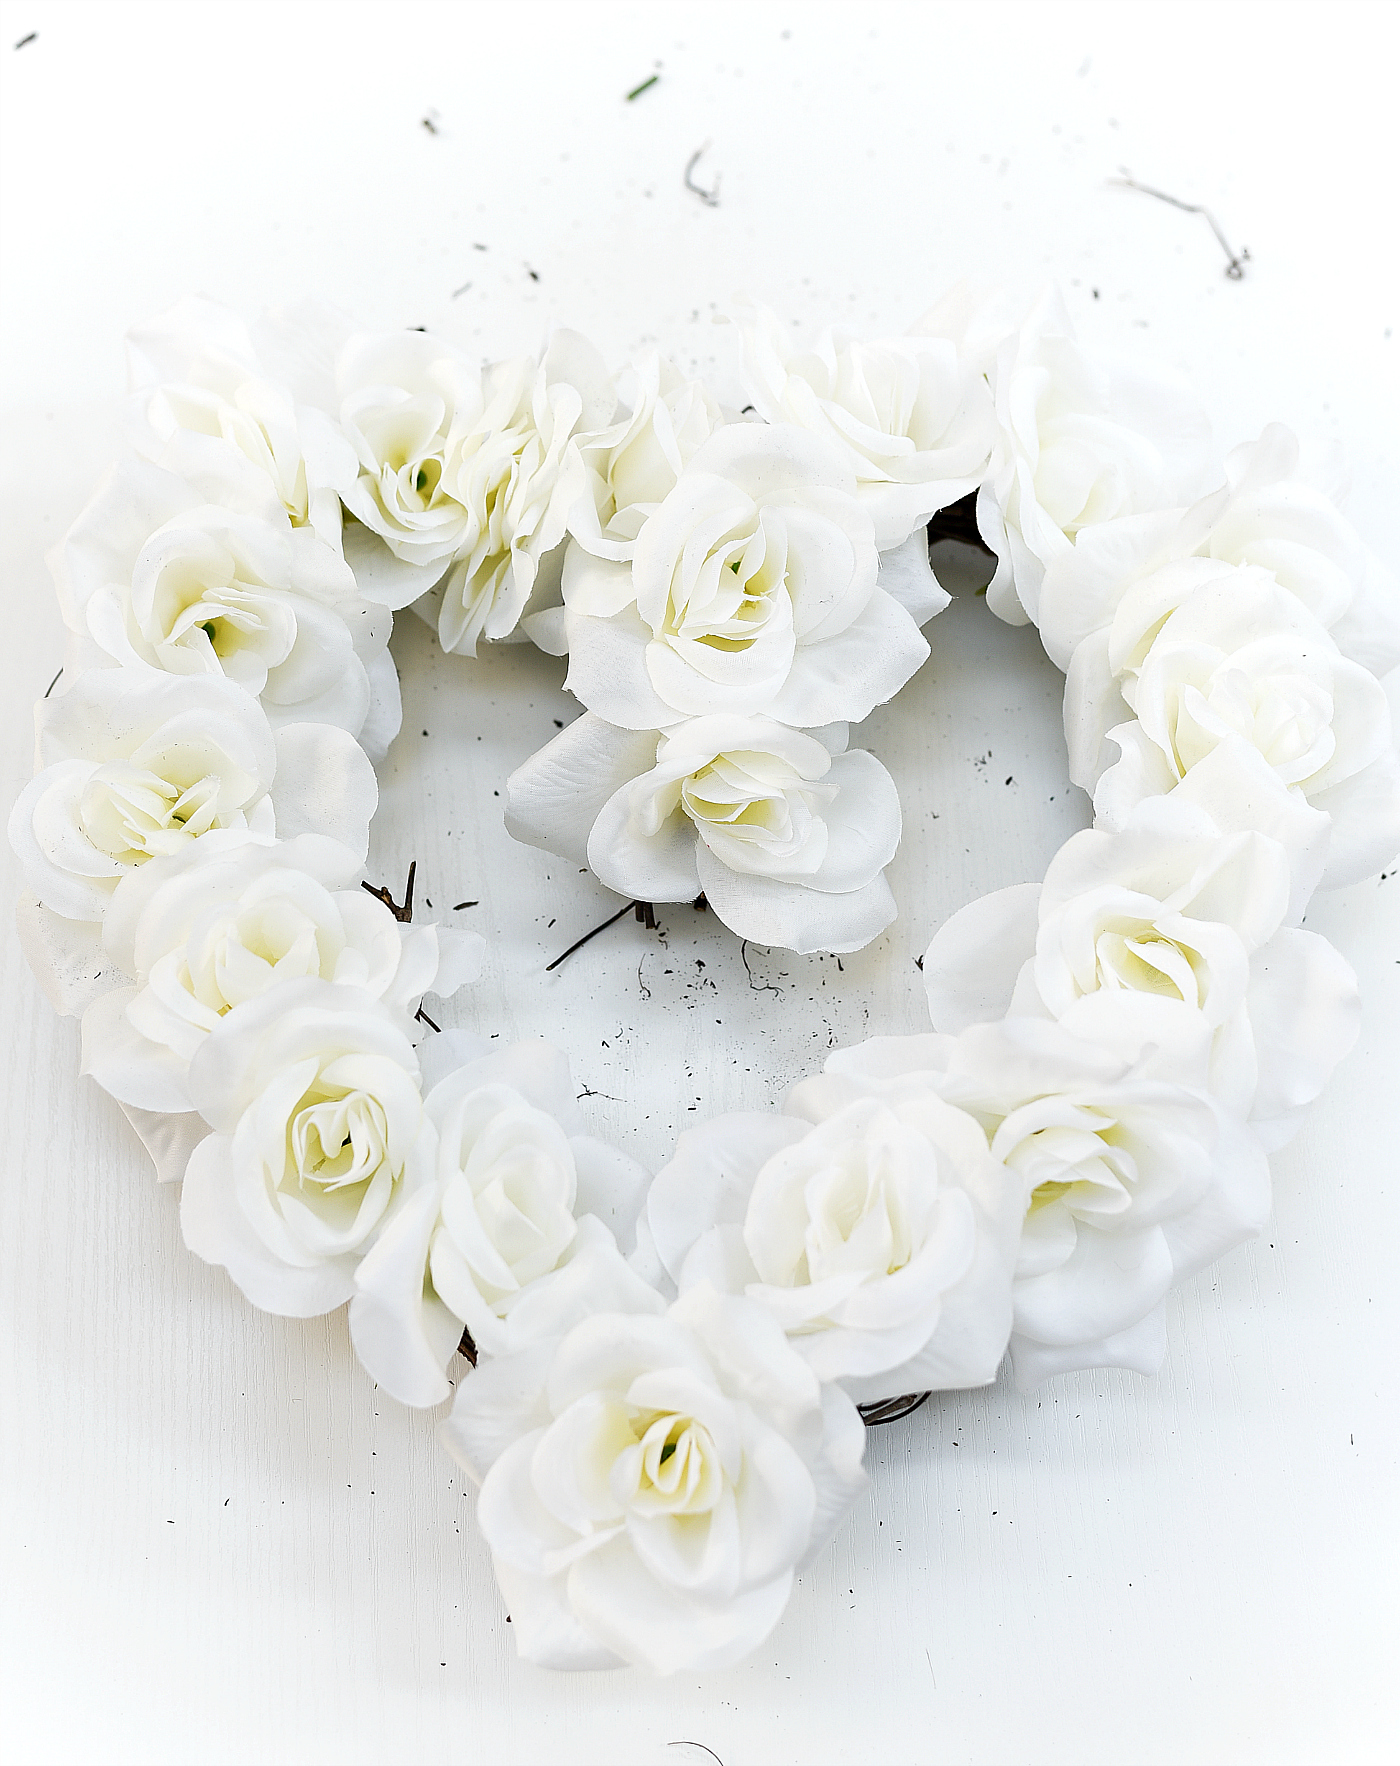 Neutral Valentine Decor Ideas - White Rose Heart Wreath